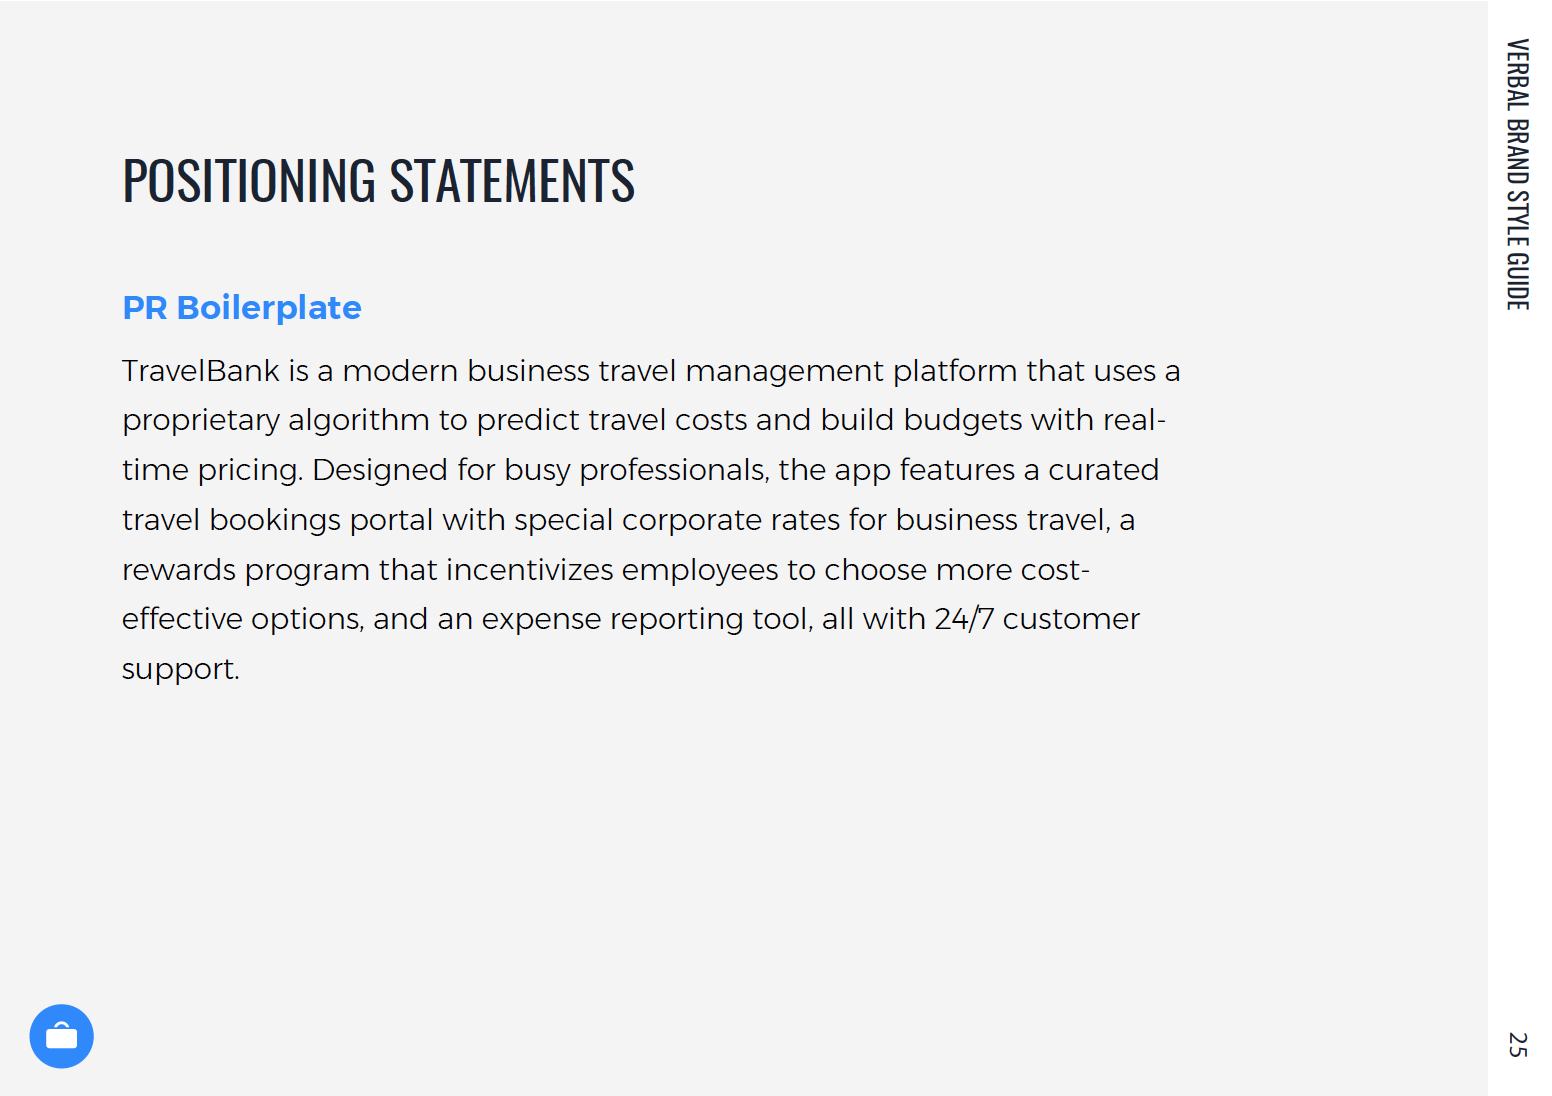 Positioning statement used for PR, developed from internal value prop.